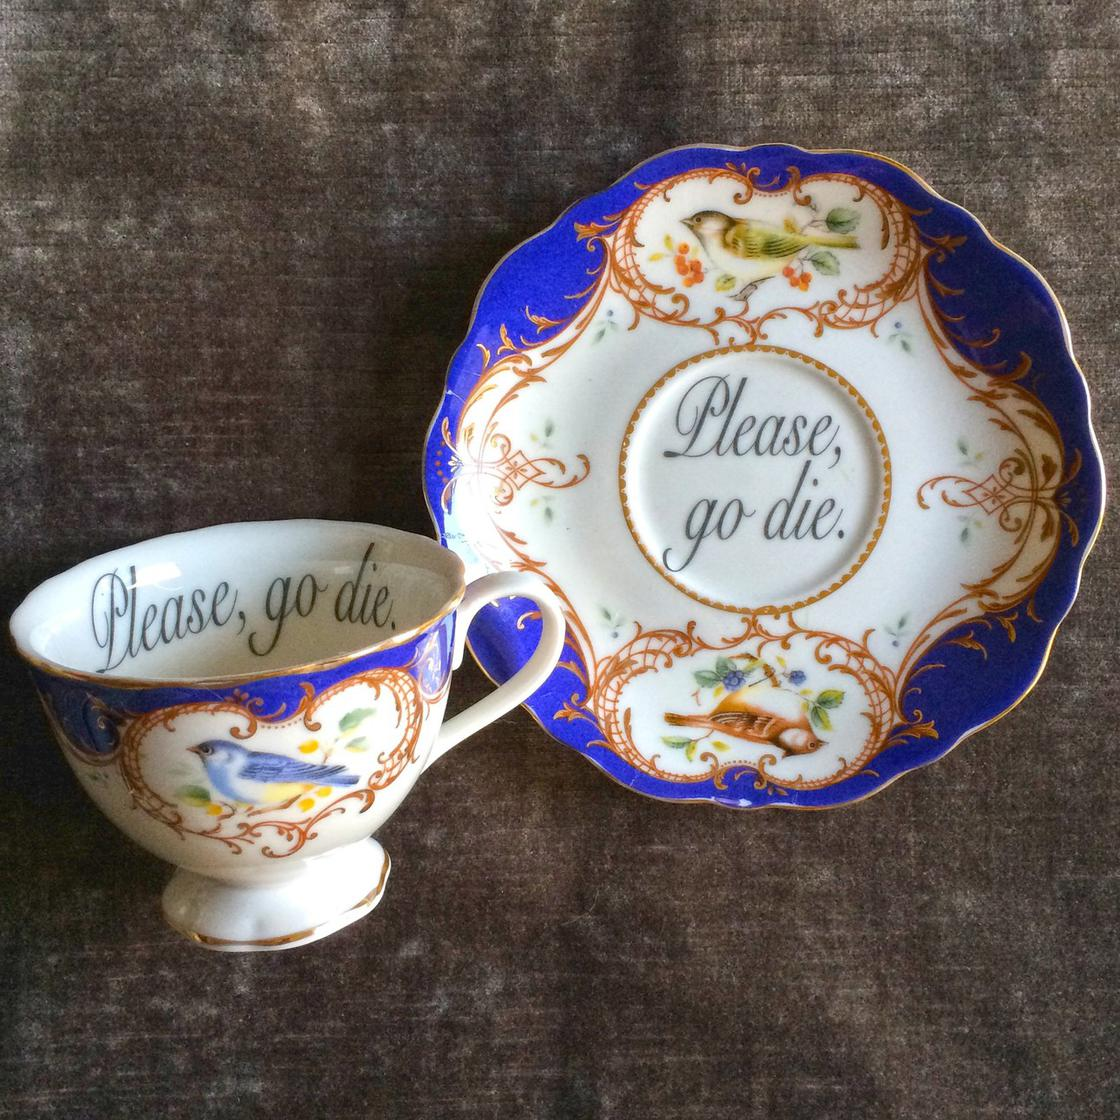 Insult Teacups – Greet your guests with some delicate insults